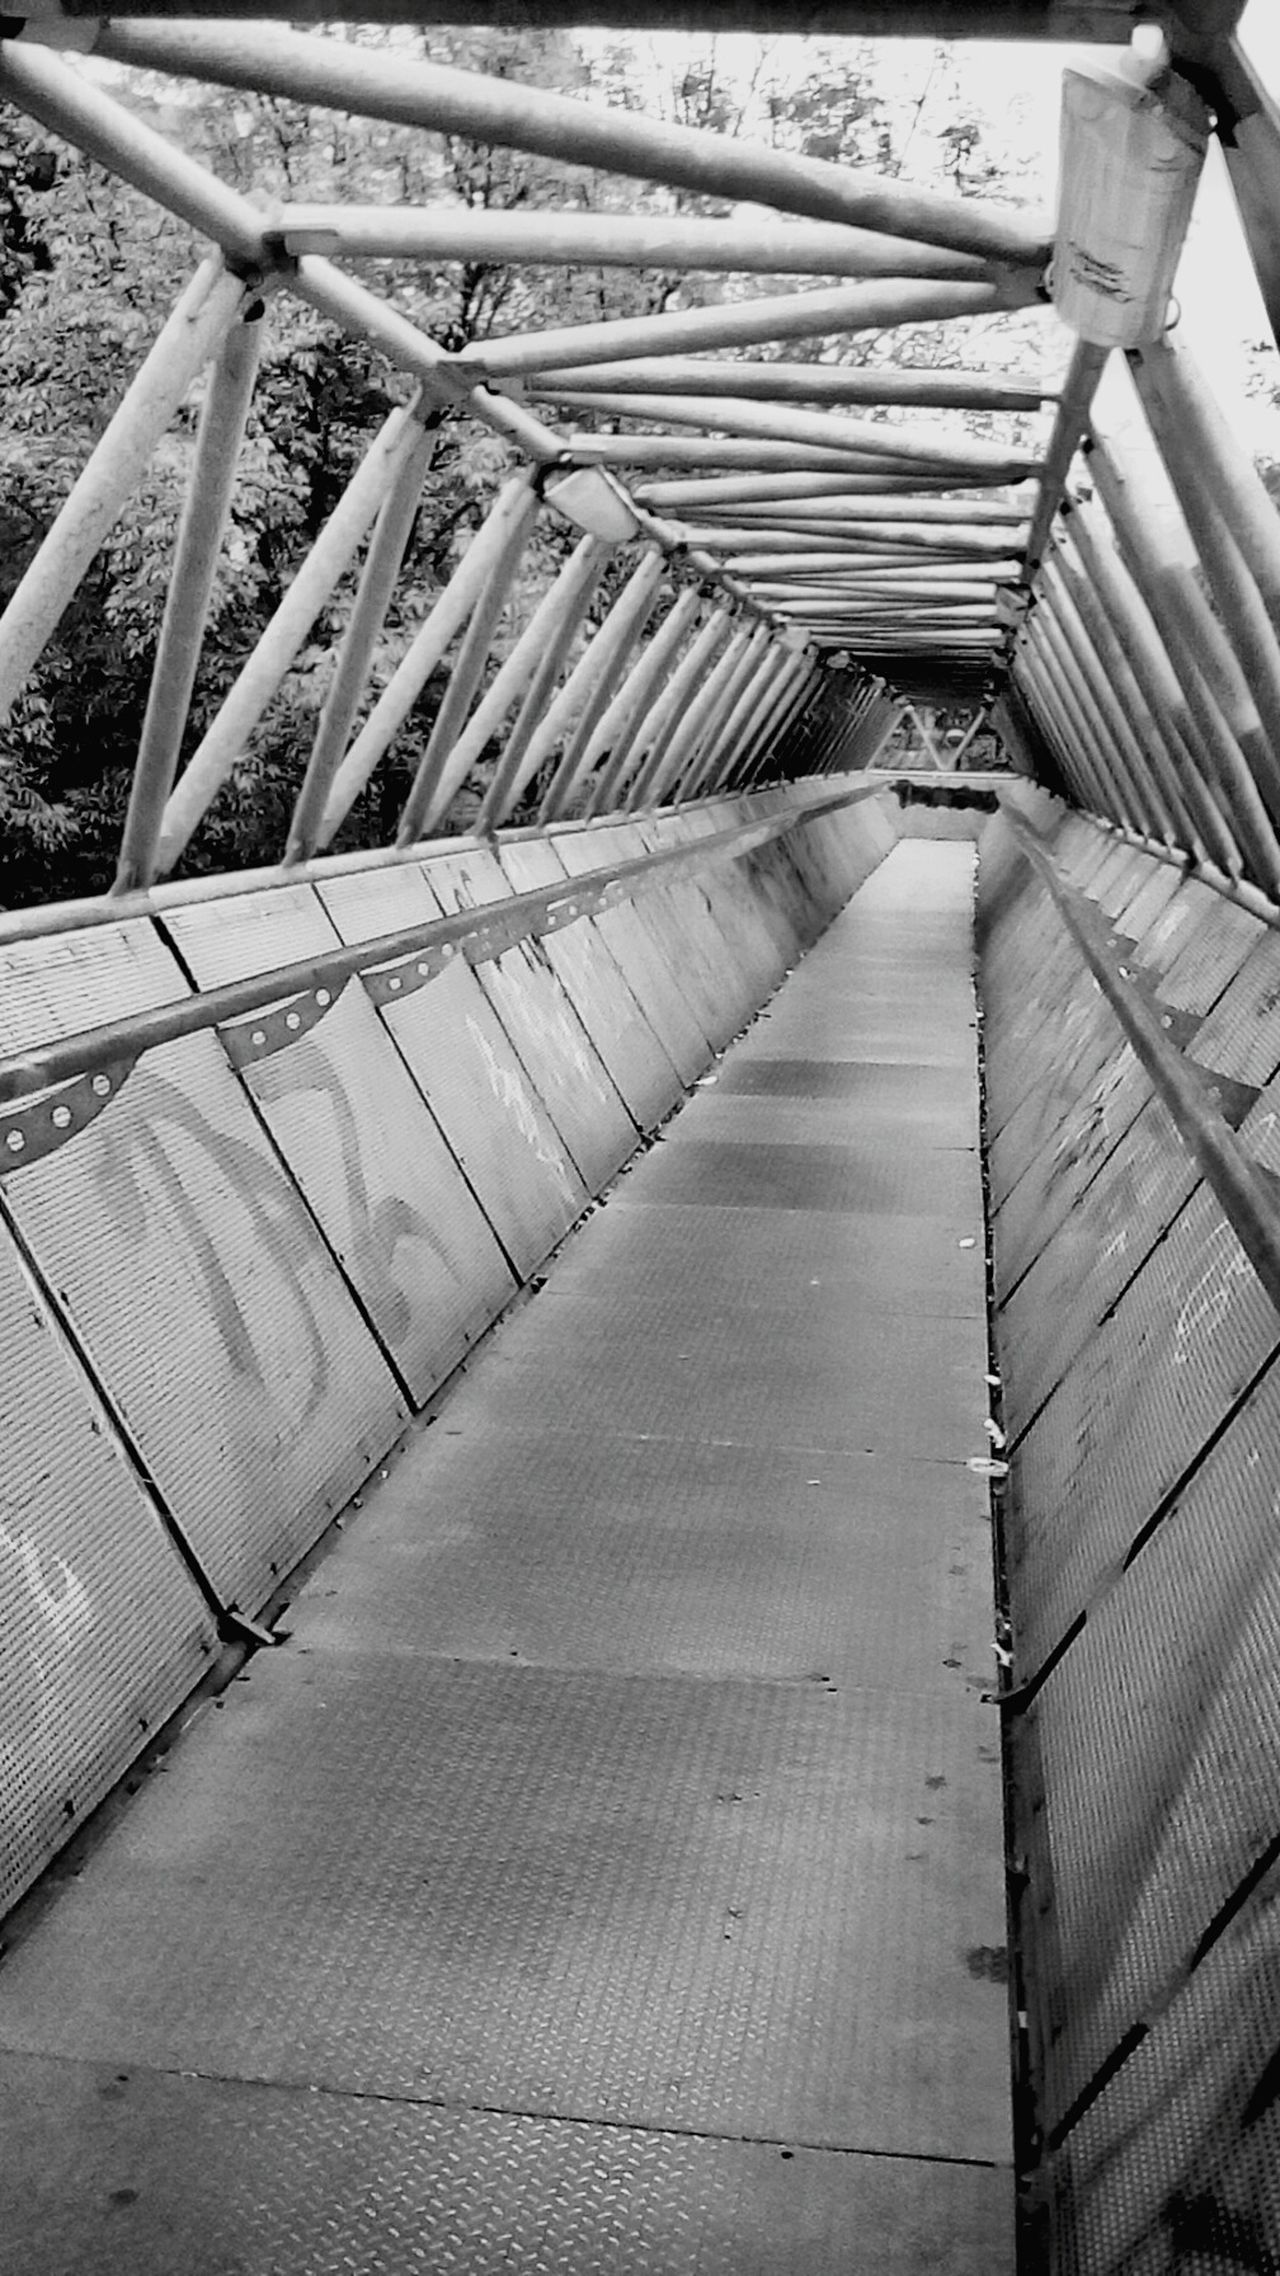 Profundo. First Eyeem Photo Deep Bridge Puentes No People